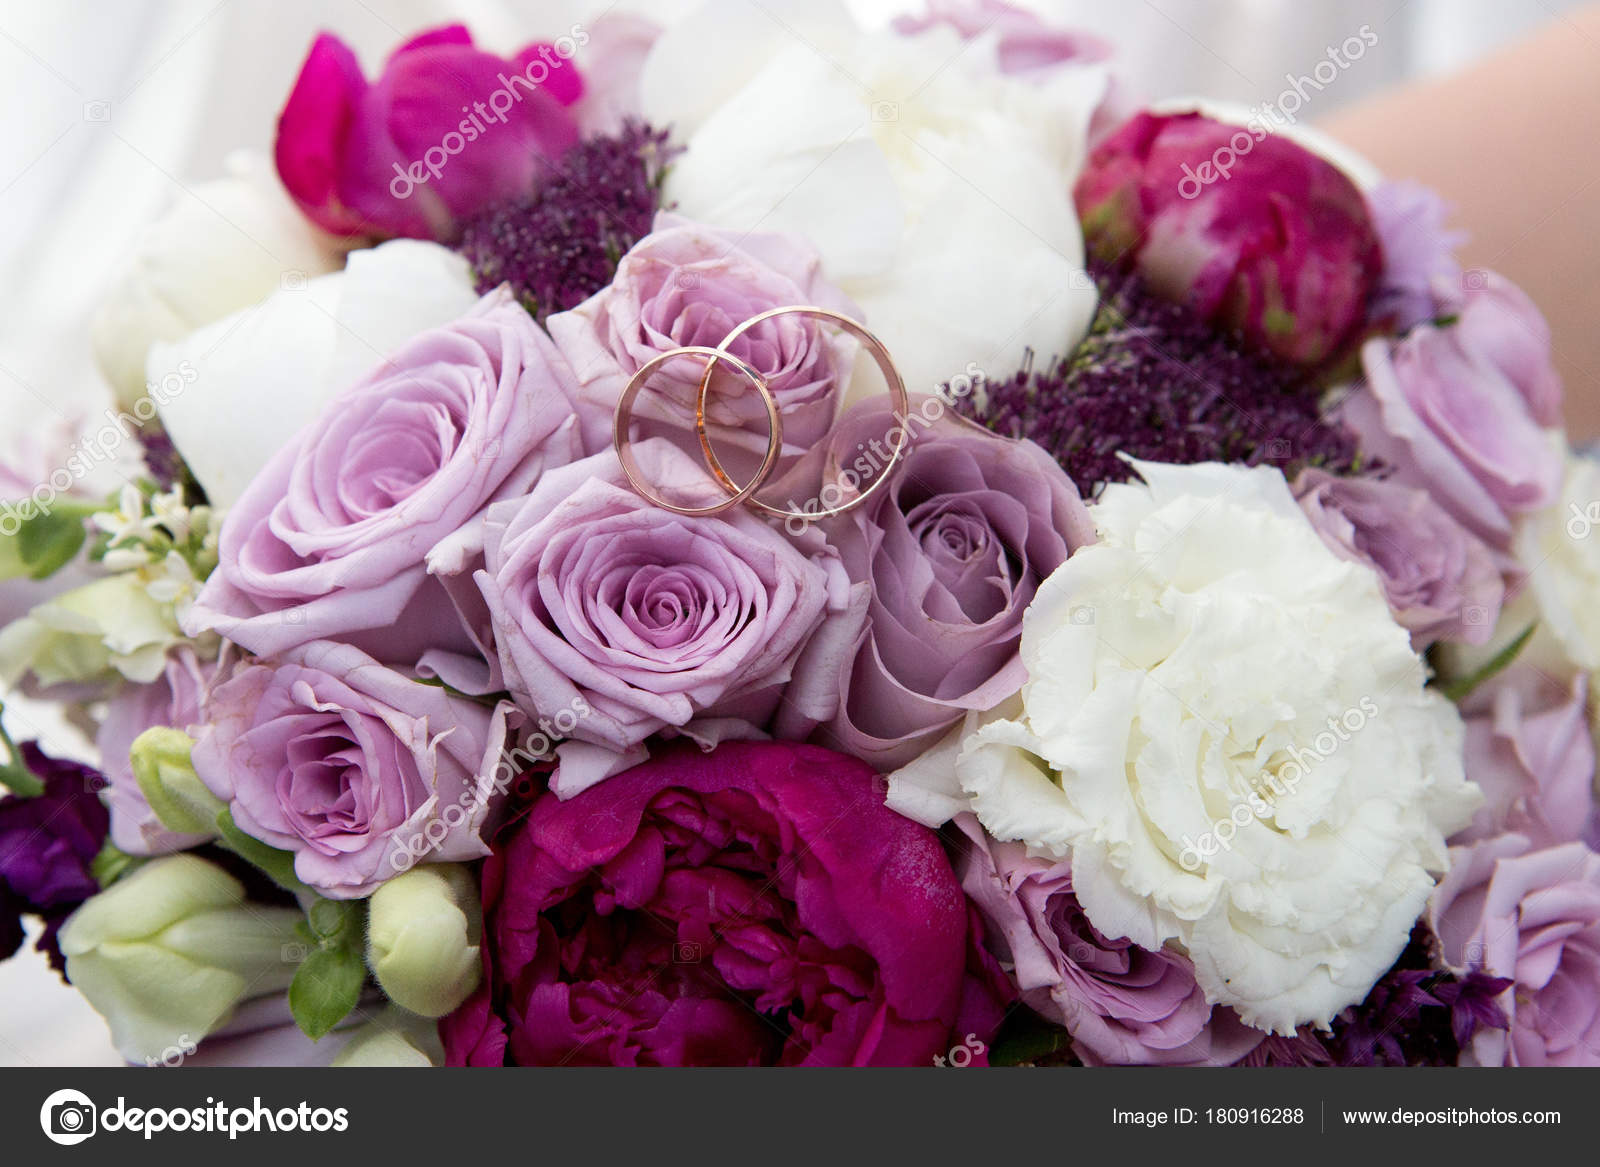 Big flower bouquet stock photo olgaosa 180916288 big bouquet and two wedding rings goods for wedding this photo is perfect for magazines shops dealing with wedding dresses ceremonies bride groom izmirmasajfo